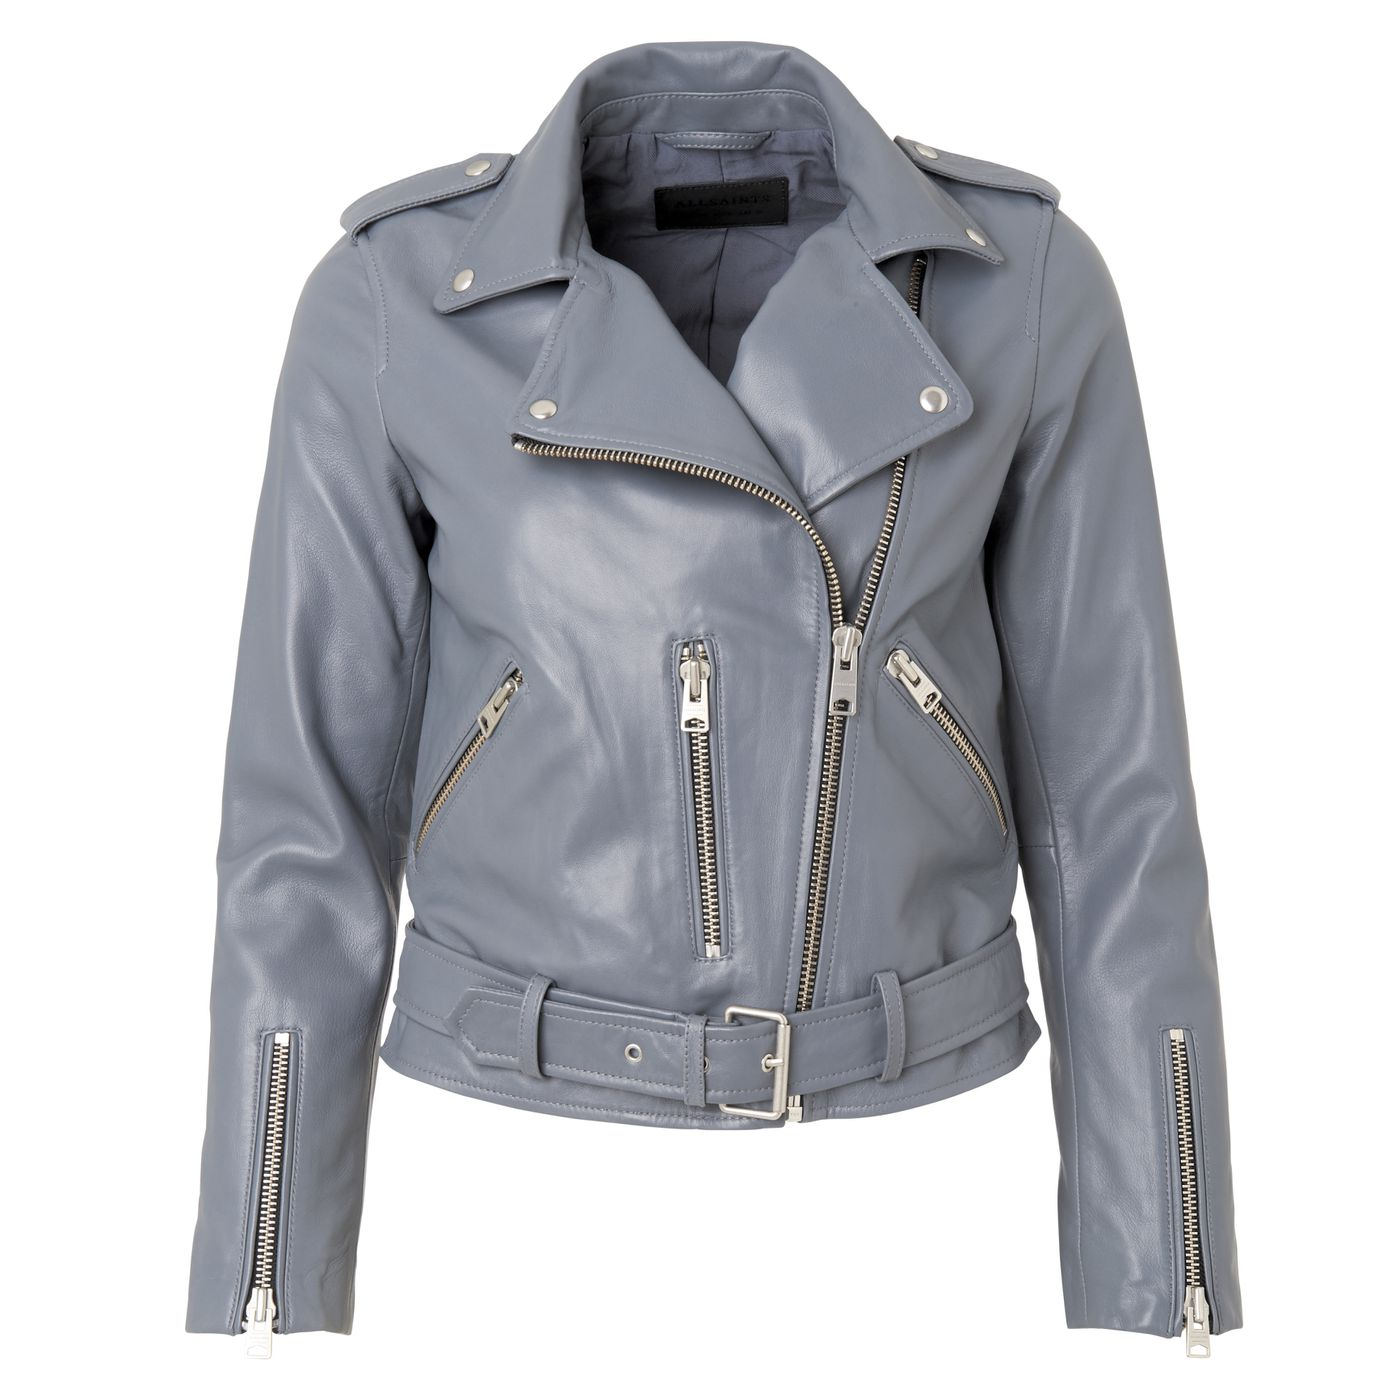 5818ae3b5 Where to Buy a Quality Leather Jacket - Racked